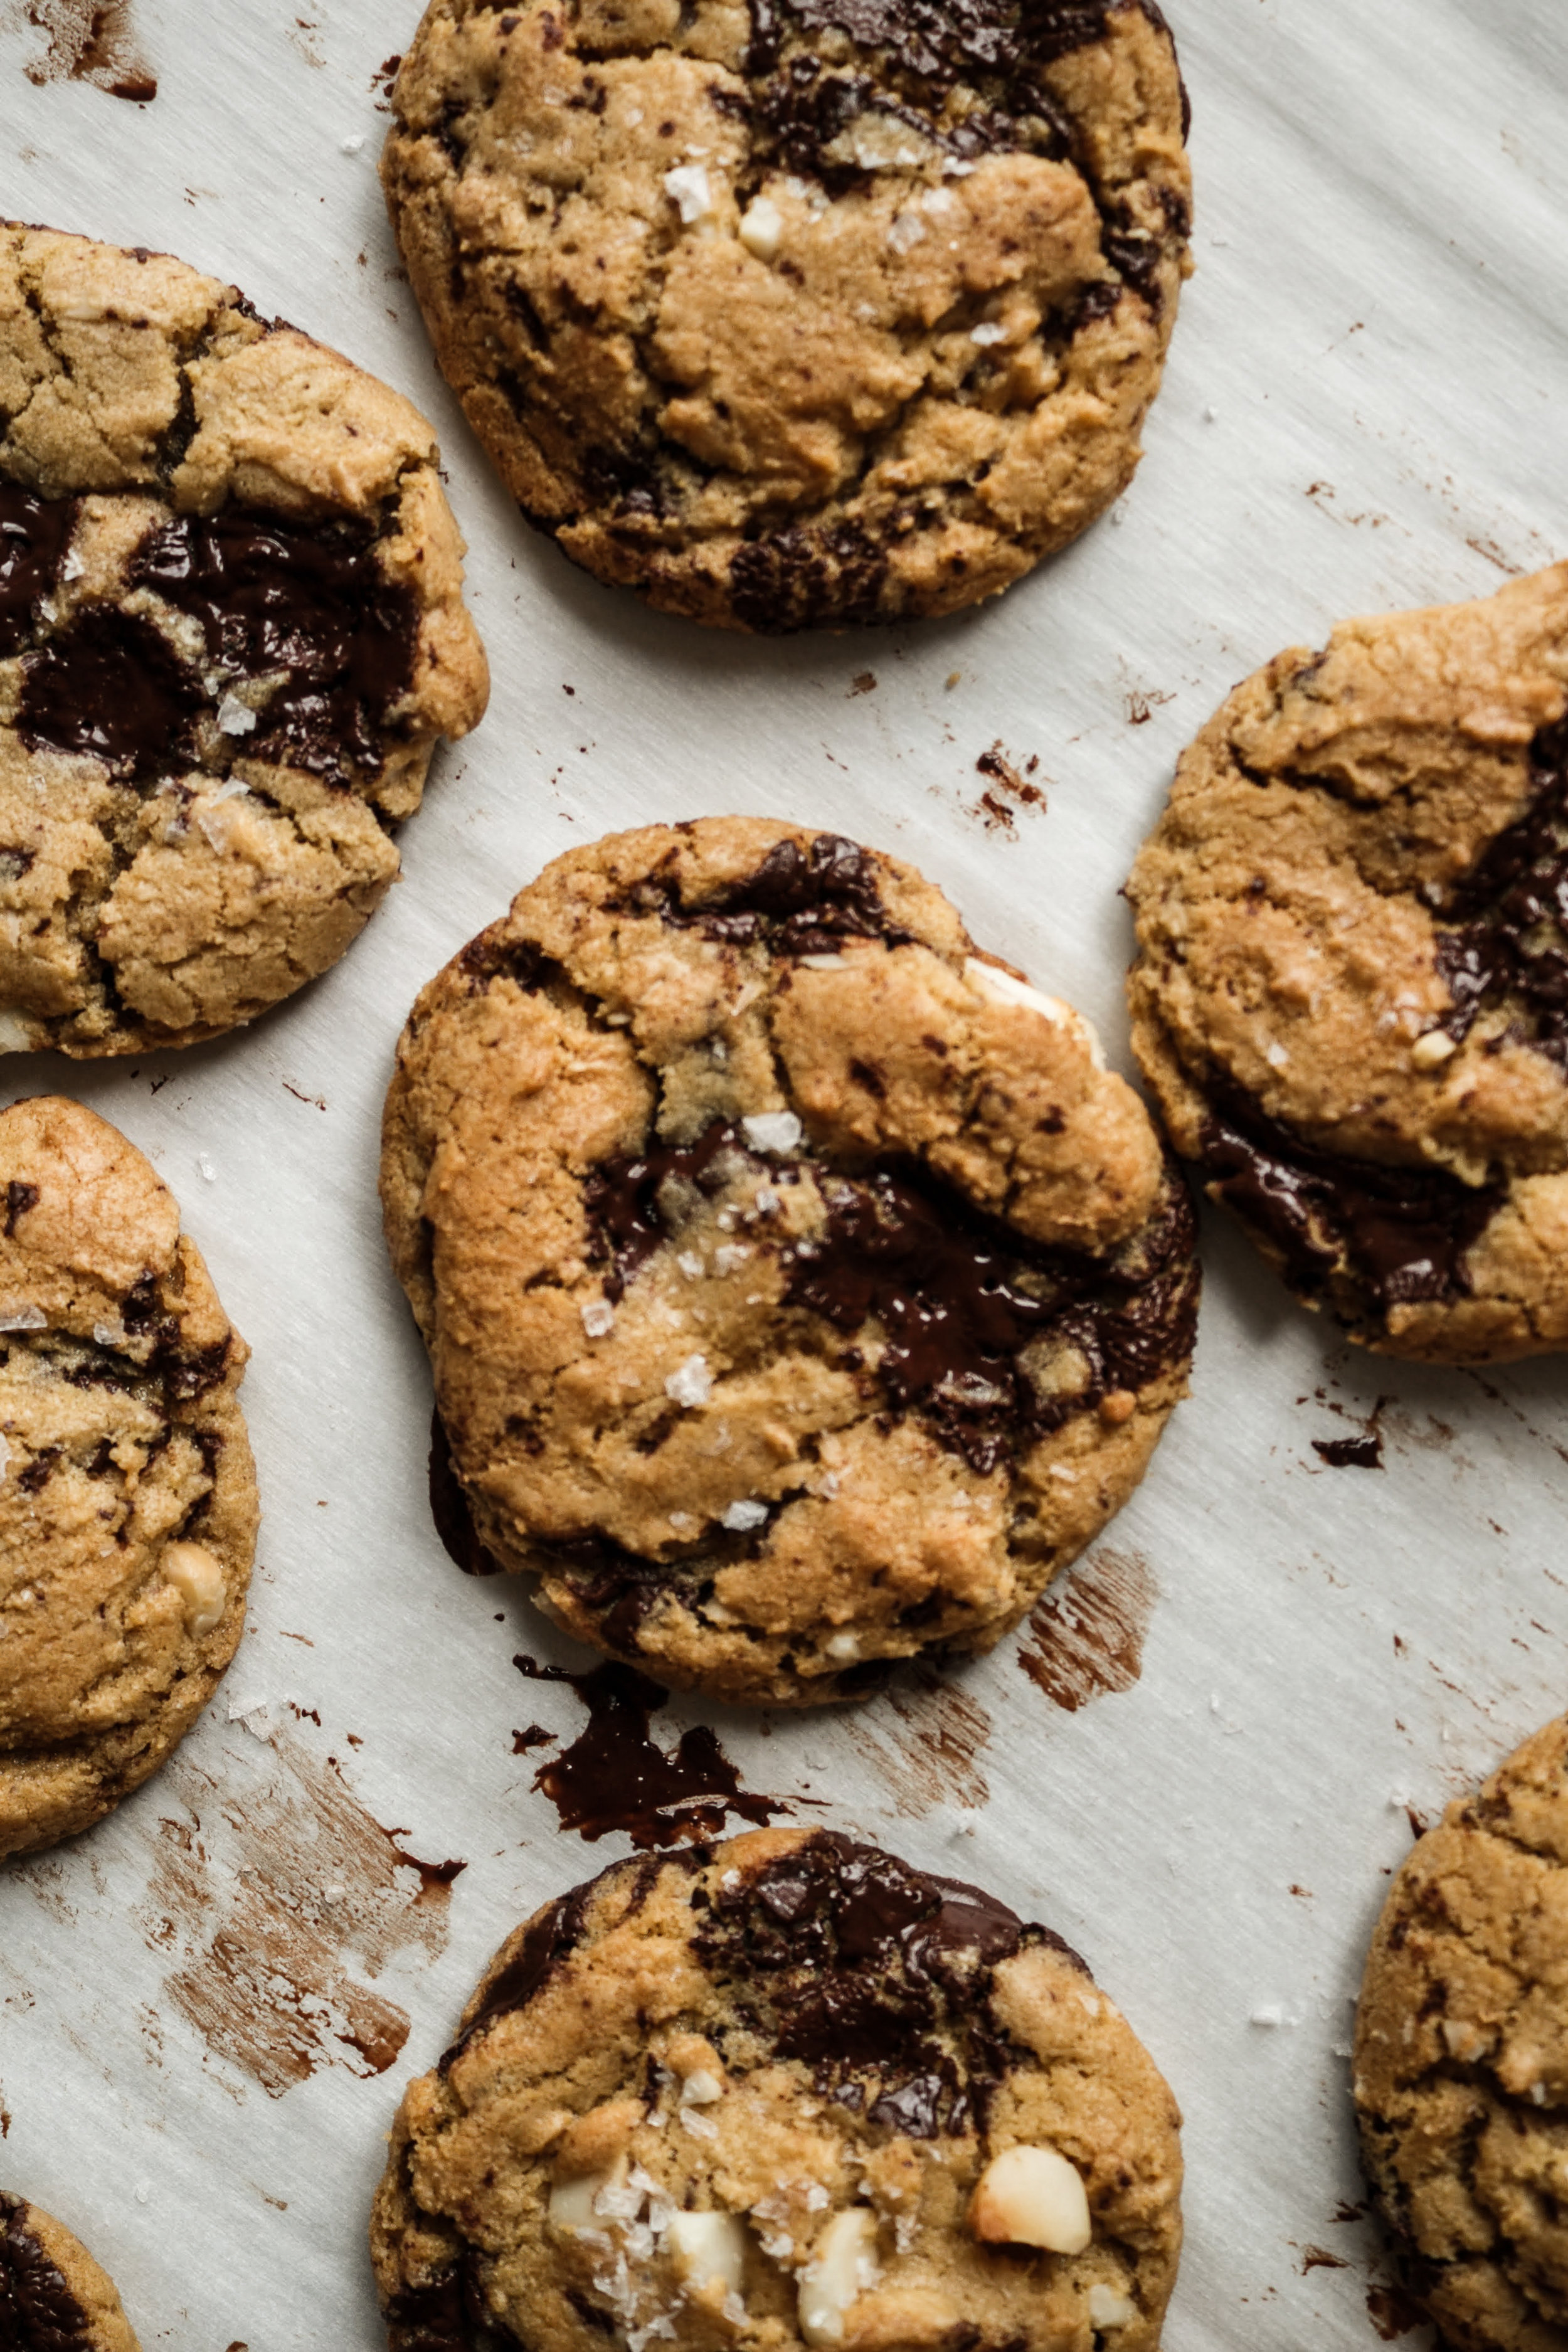 Chocolate chip macadamia cookies 5.jpg